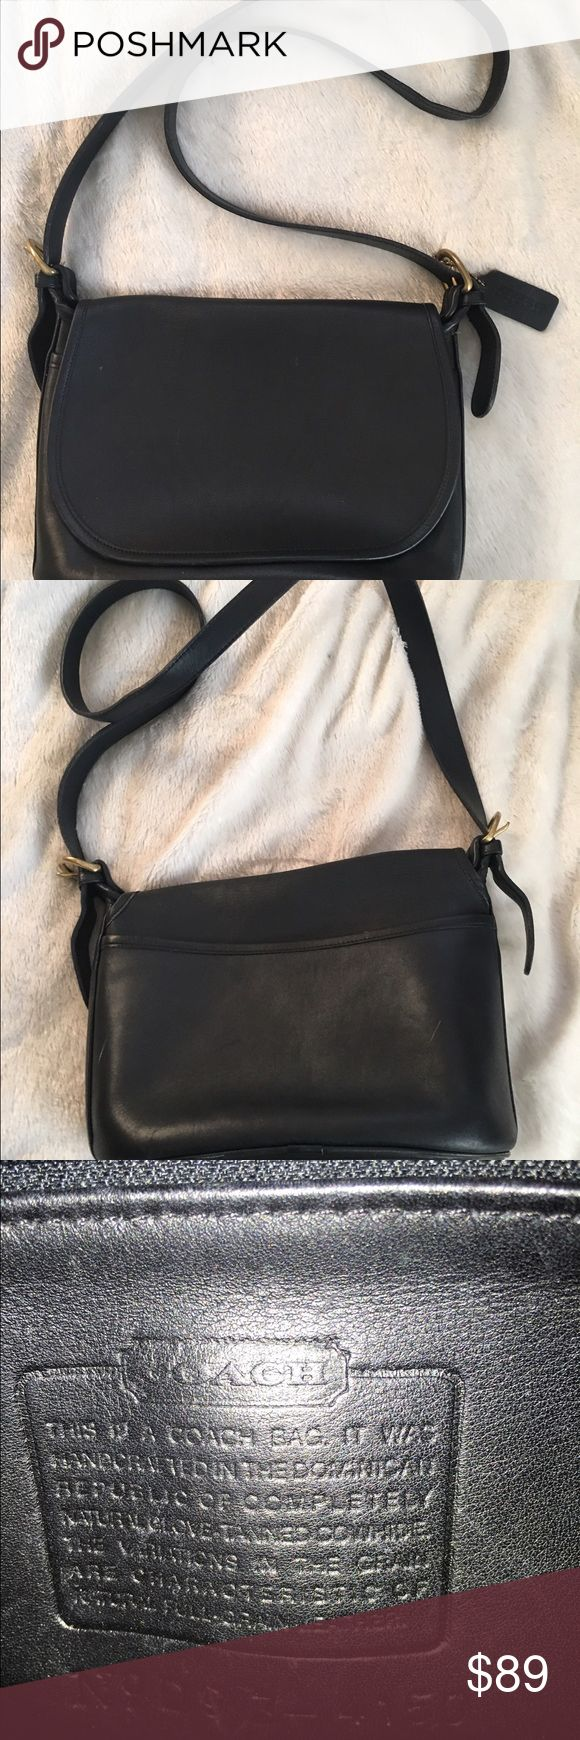 """Coach classic hobo Classic black hobo aprox 12""""x4.25 x 8"""" coach no. D9z 4250 w/ flap  over 1 1 open slot conpartment & 1 big  compartment w/ zip closure which has a smaller pocket on the inside that also has a zipper to close, put side back side has another open slip pocket, adjustable sholder strap measures aprox 1"""" x 46"""", this bag has never been carried only has a few minnor scuffs on outside from just hanging around, condition is execellent! Can't go wrong with this Beautiful bag at a…"""